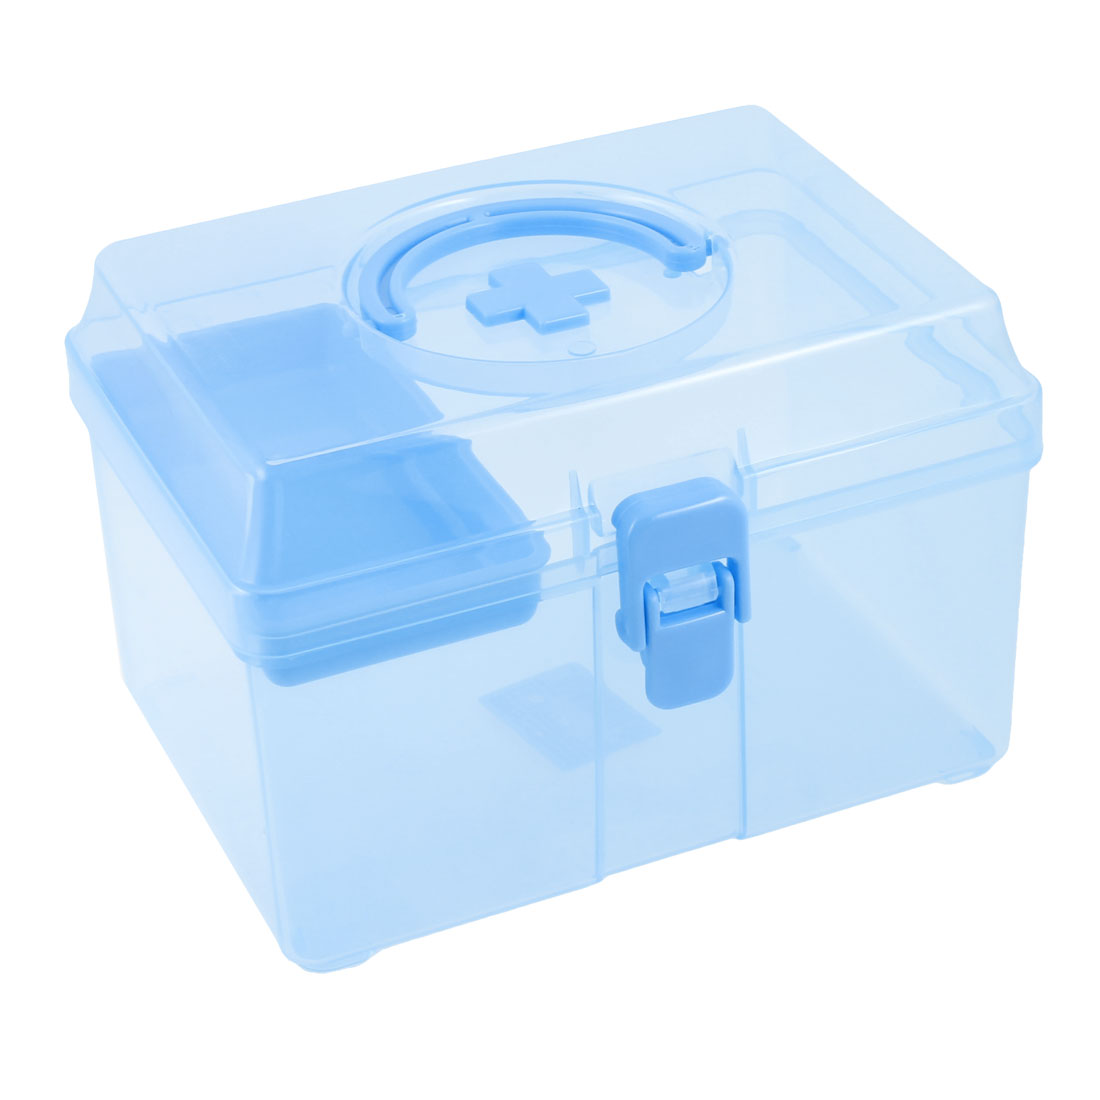 Clear Blue Plastic Two Compartment Family Medicine Chest Pill First Aid Case